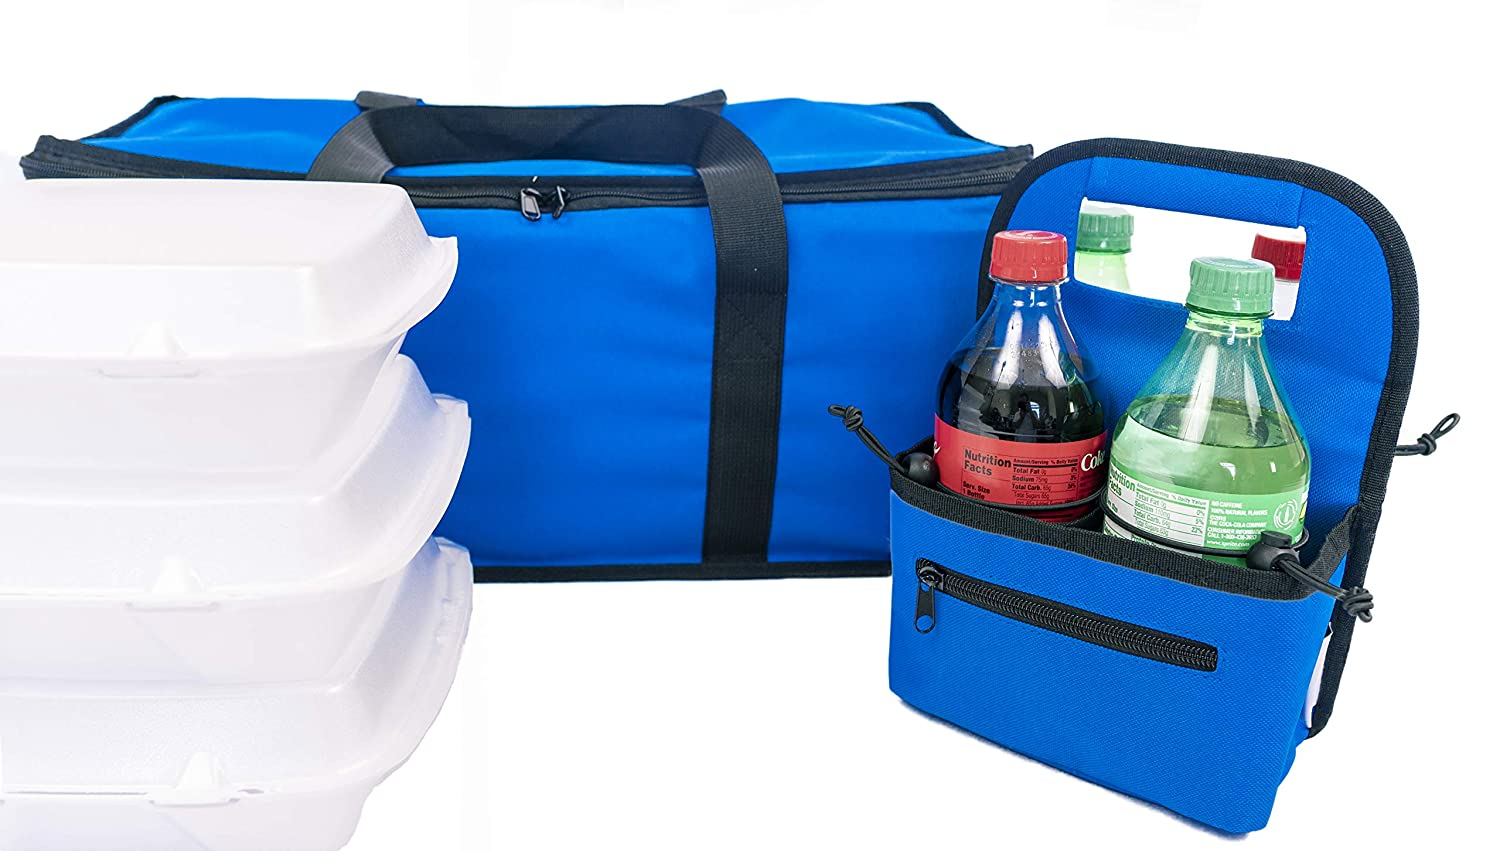 EMMandSOPHIE Insulated Food Delivery Bag - BLUE- Drink Carrier for Delivery - WINNING PROFESSIONAL COMBO -Sturdy Durable Commercial Insulated food bag - 22